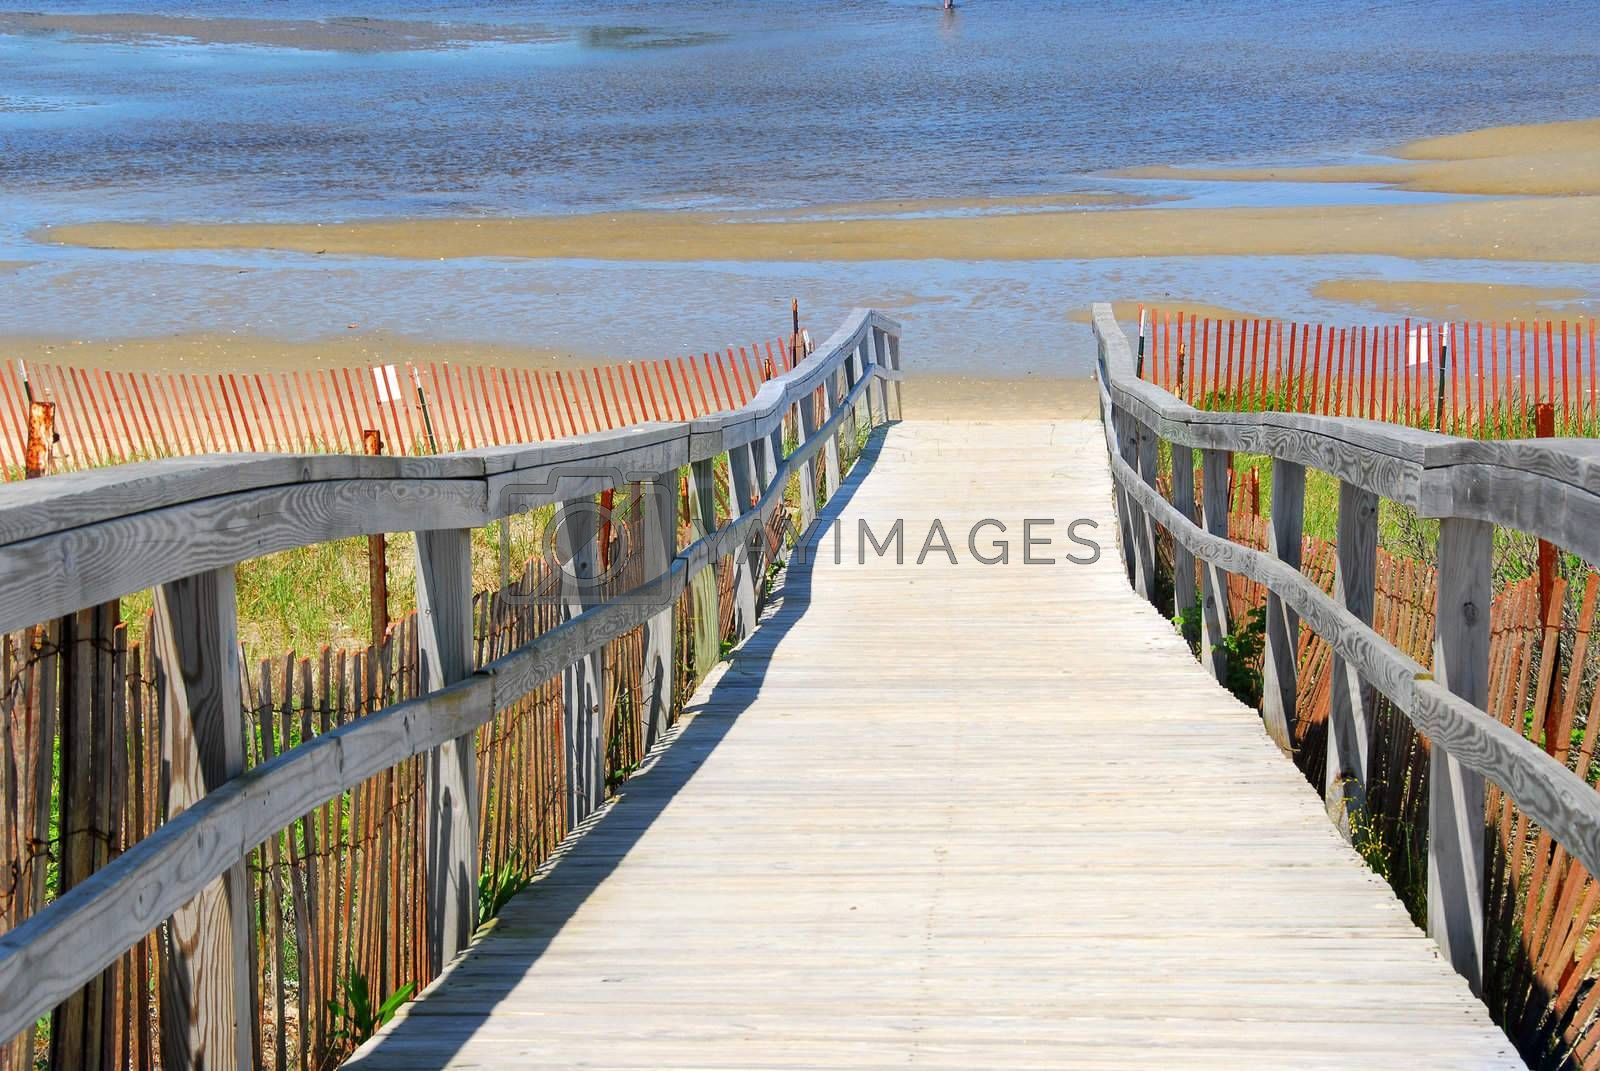 Wooden path over sand dunes with beach view